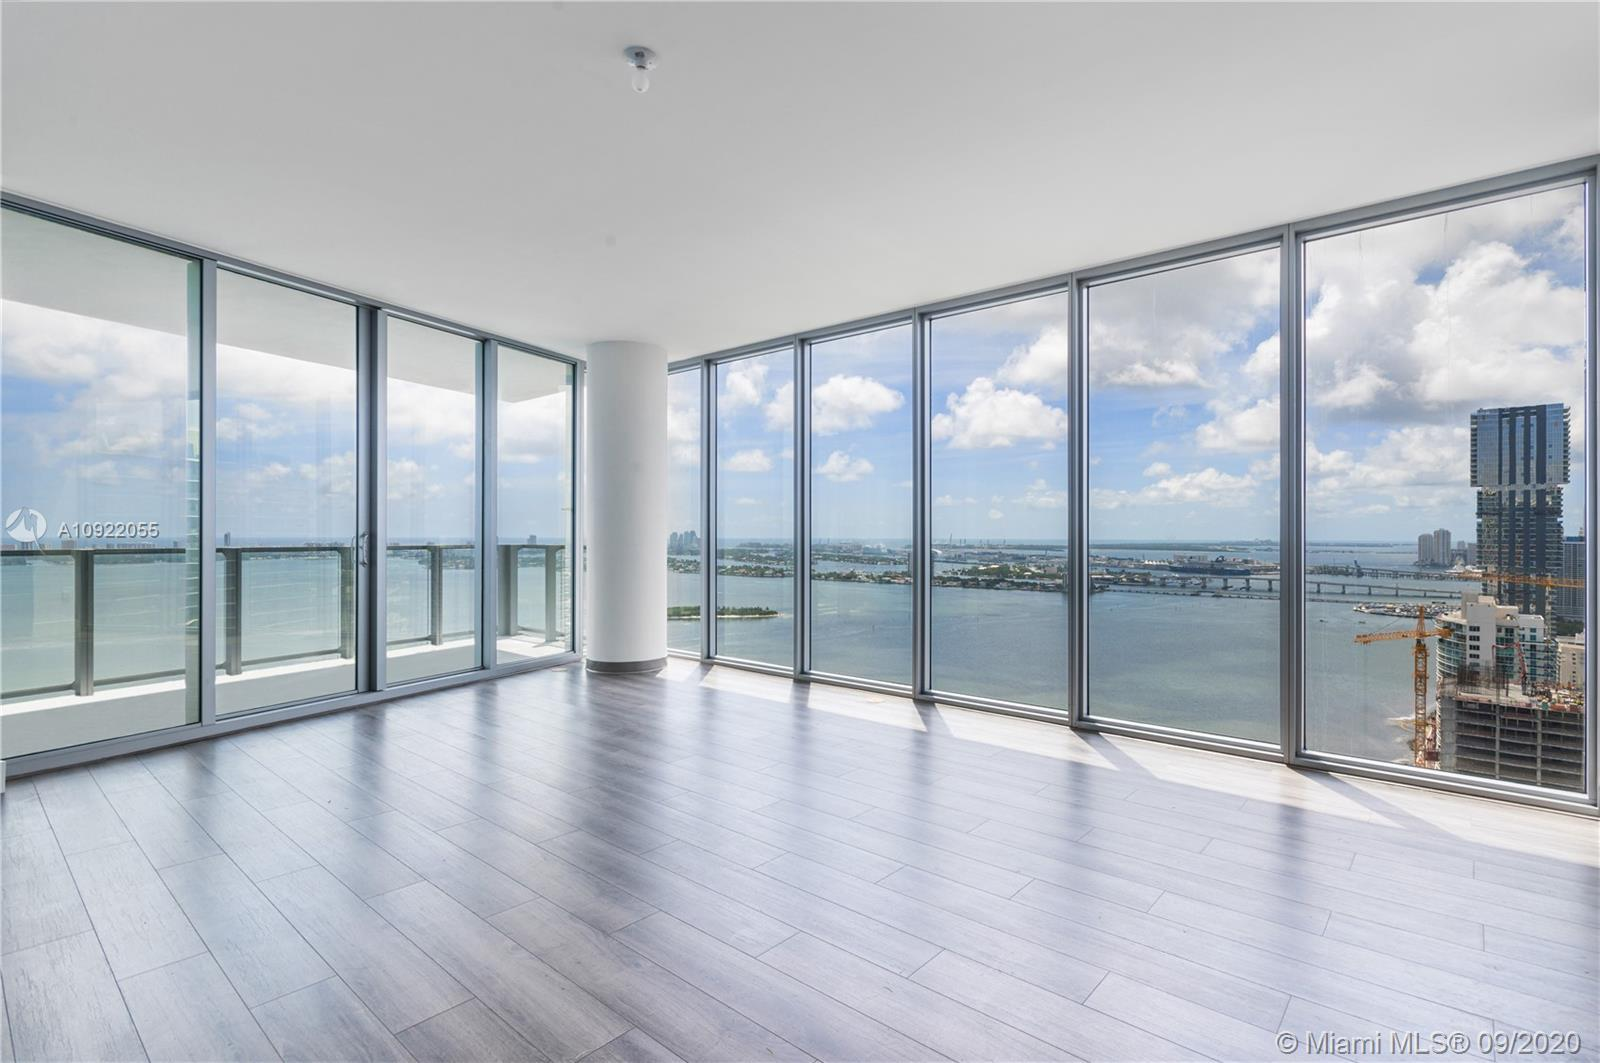 Imagine a life of exquisite taste in this beautifully never-lived corner residence at Biscayne Beach